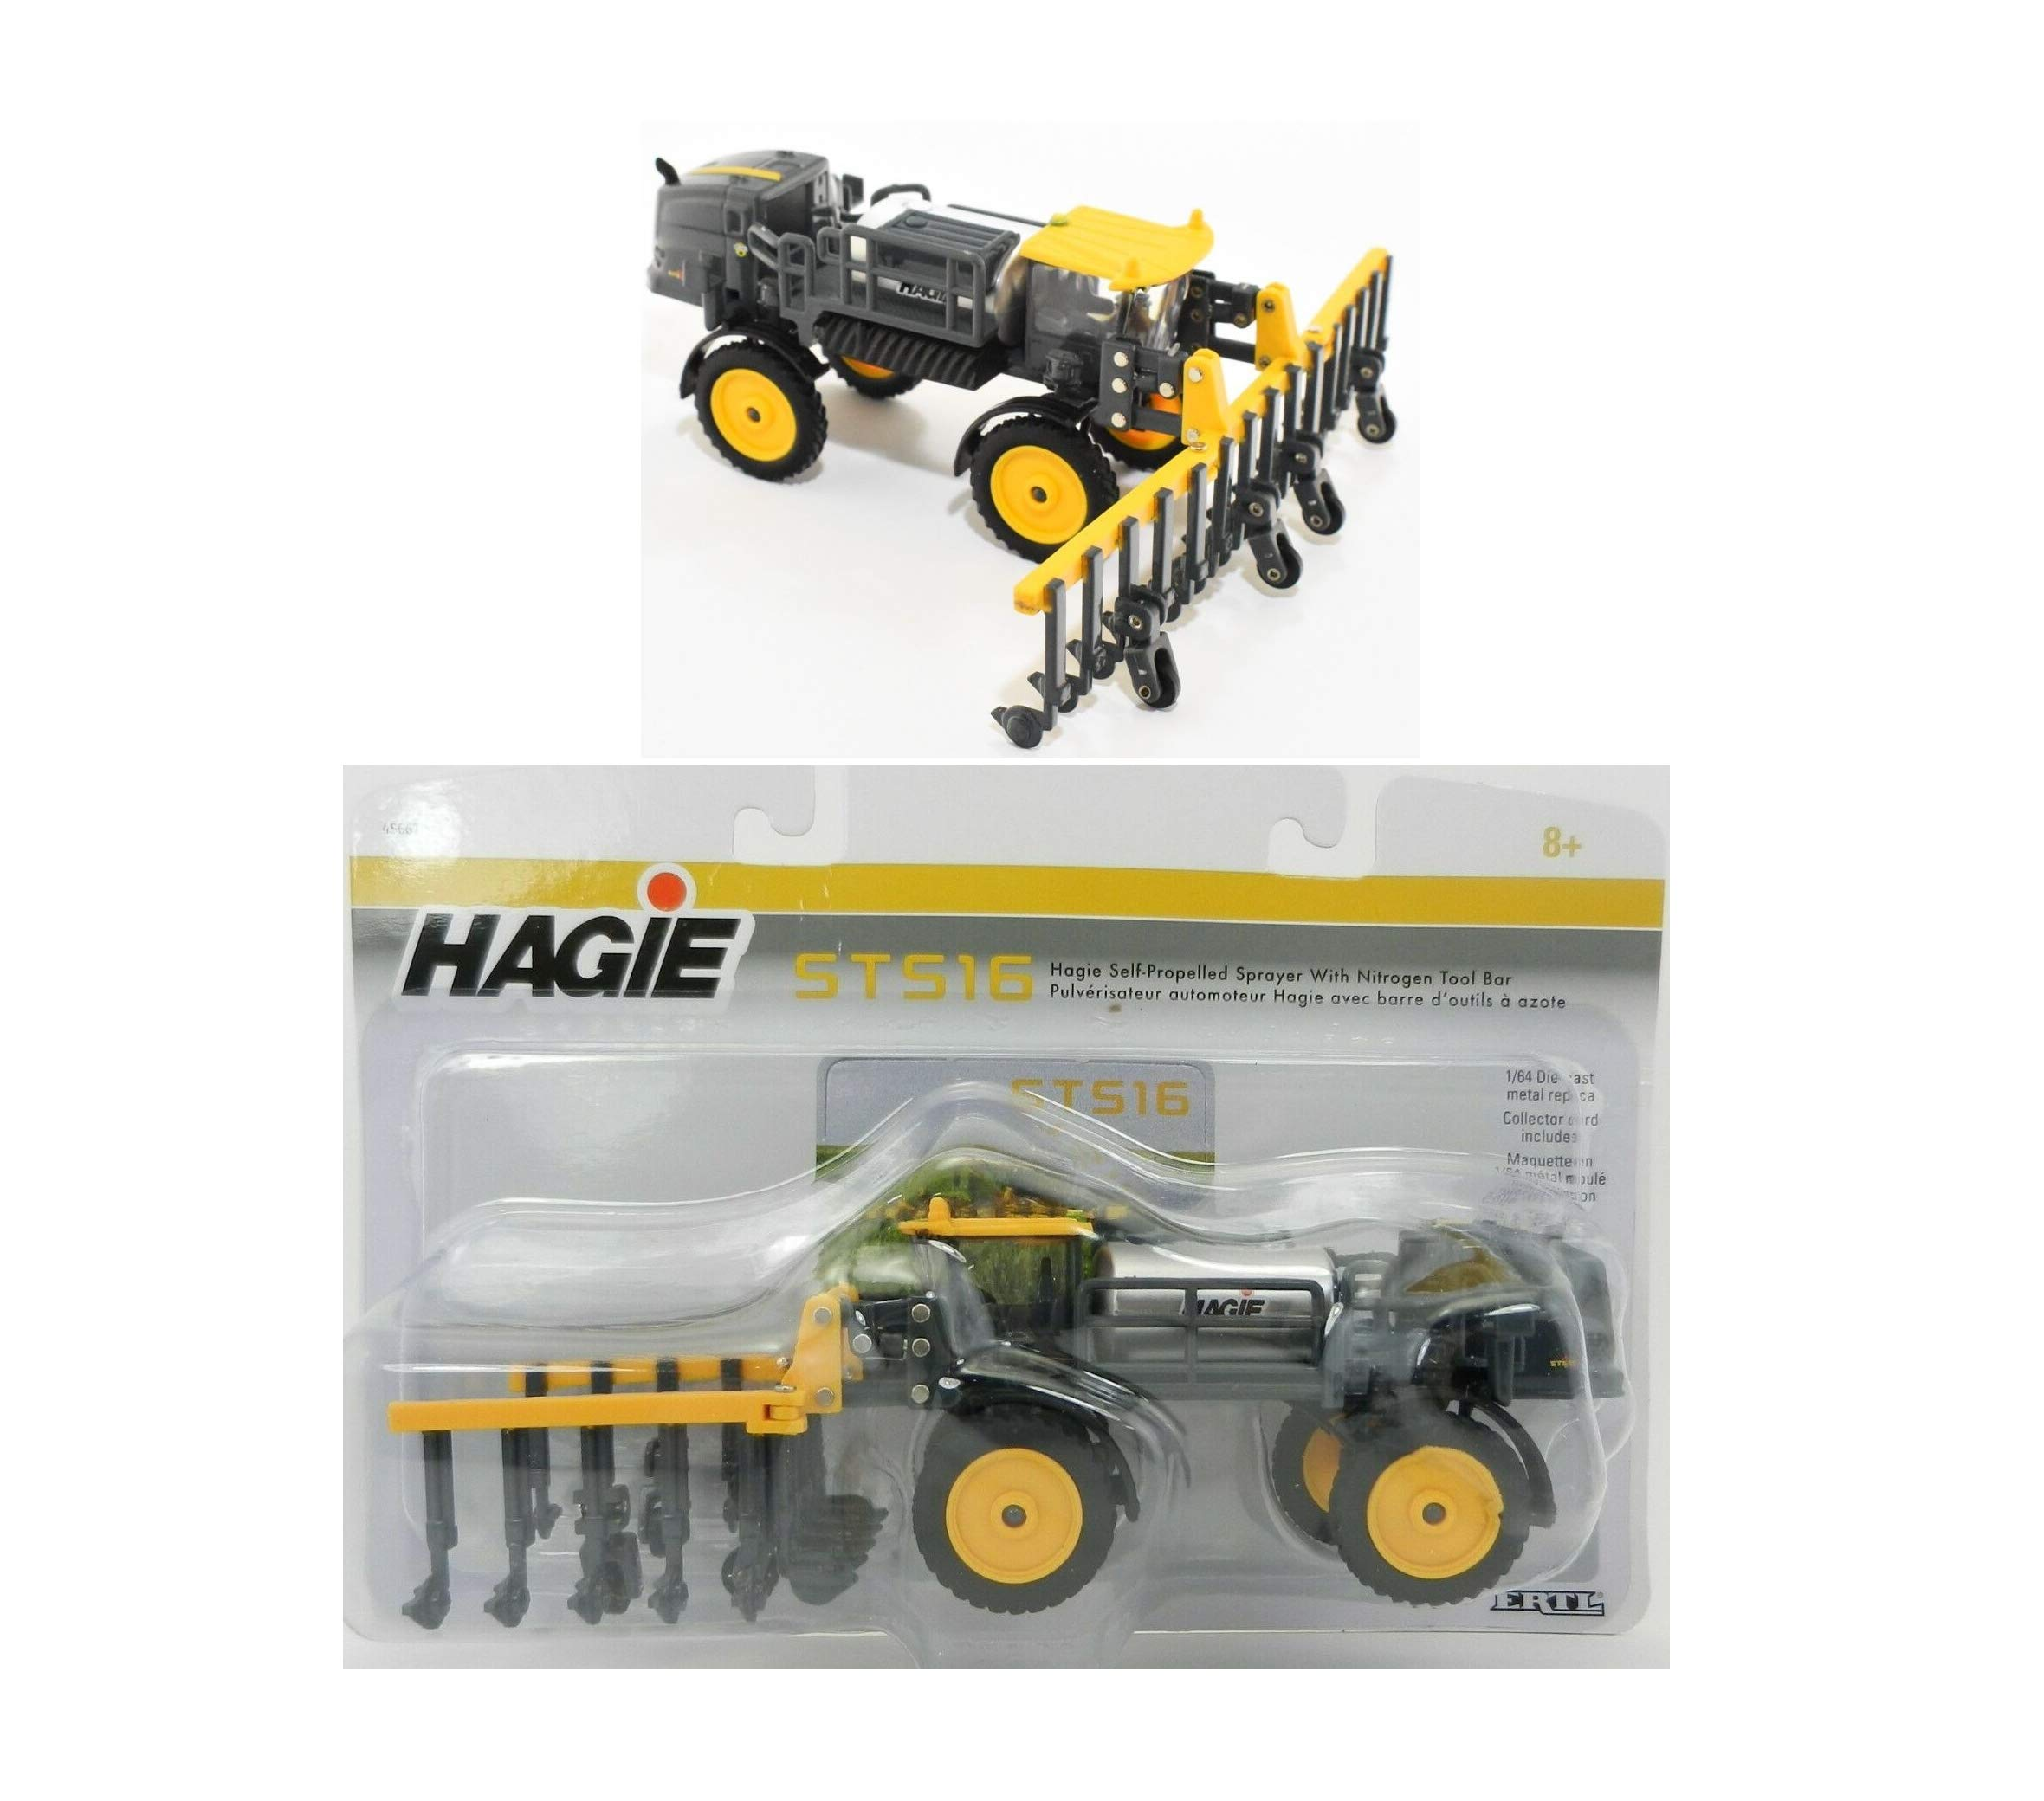 2019 1:64 HAGlE STS16 Self-Propelled Sprayer w/NITROGEN Tool BAR NIP Rare Collect Diecast Vehicle Toy